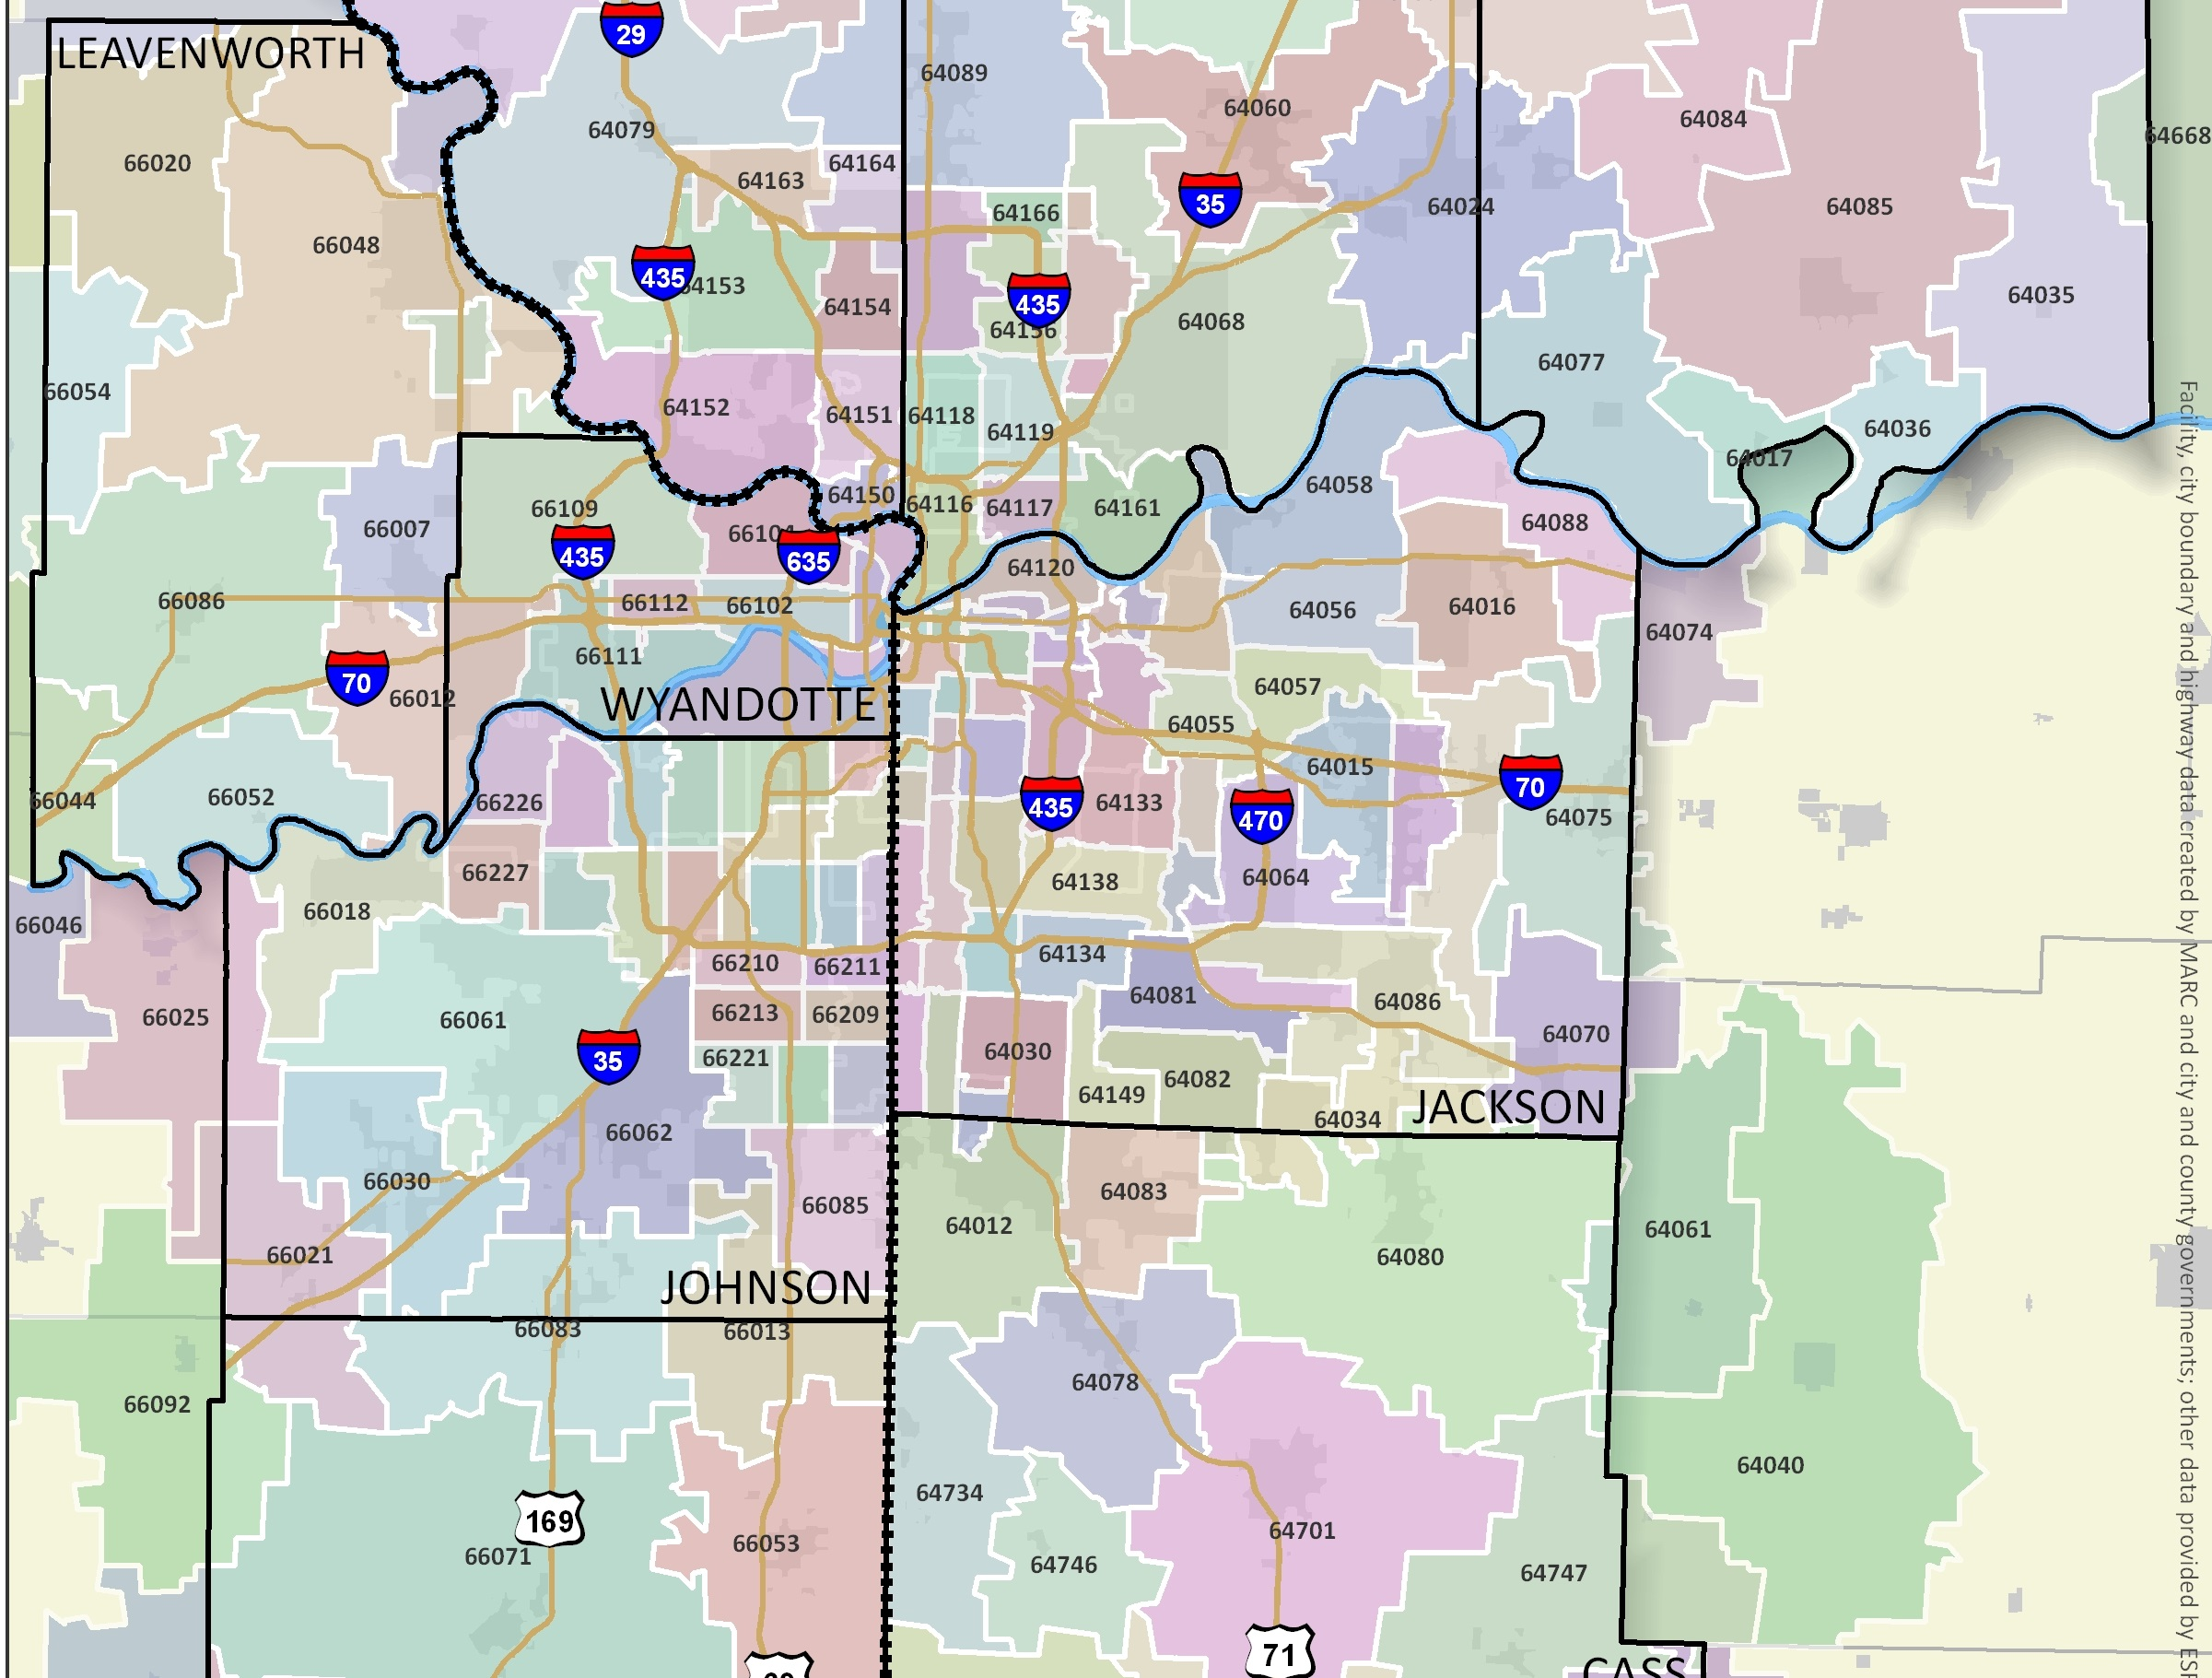 kansas city kansas zip code map Popular Kansas City Zip Codes For Real Estate Investors Orenda kansas city kansas zip code map